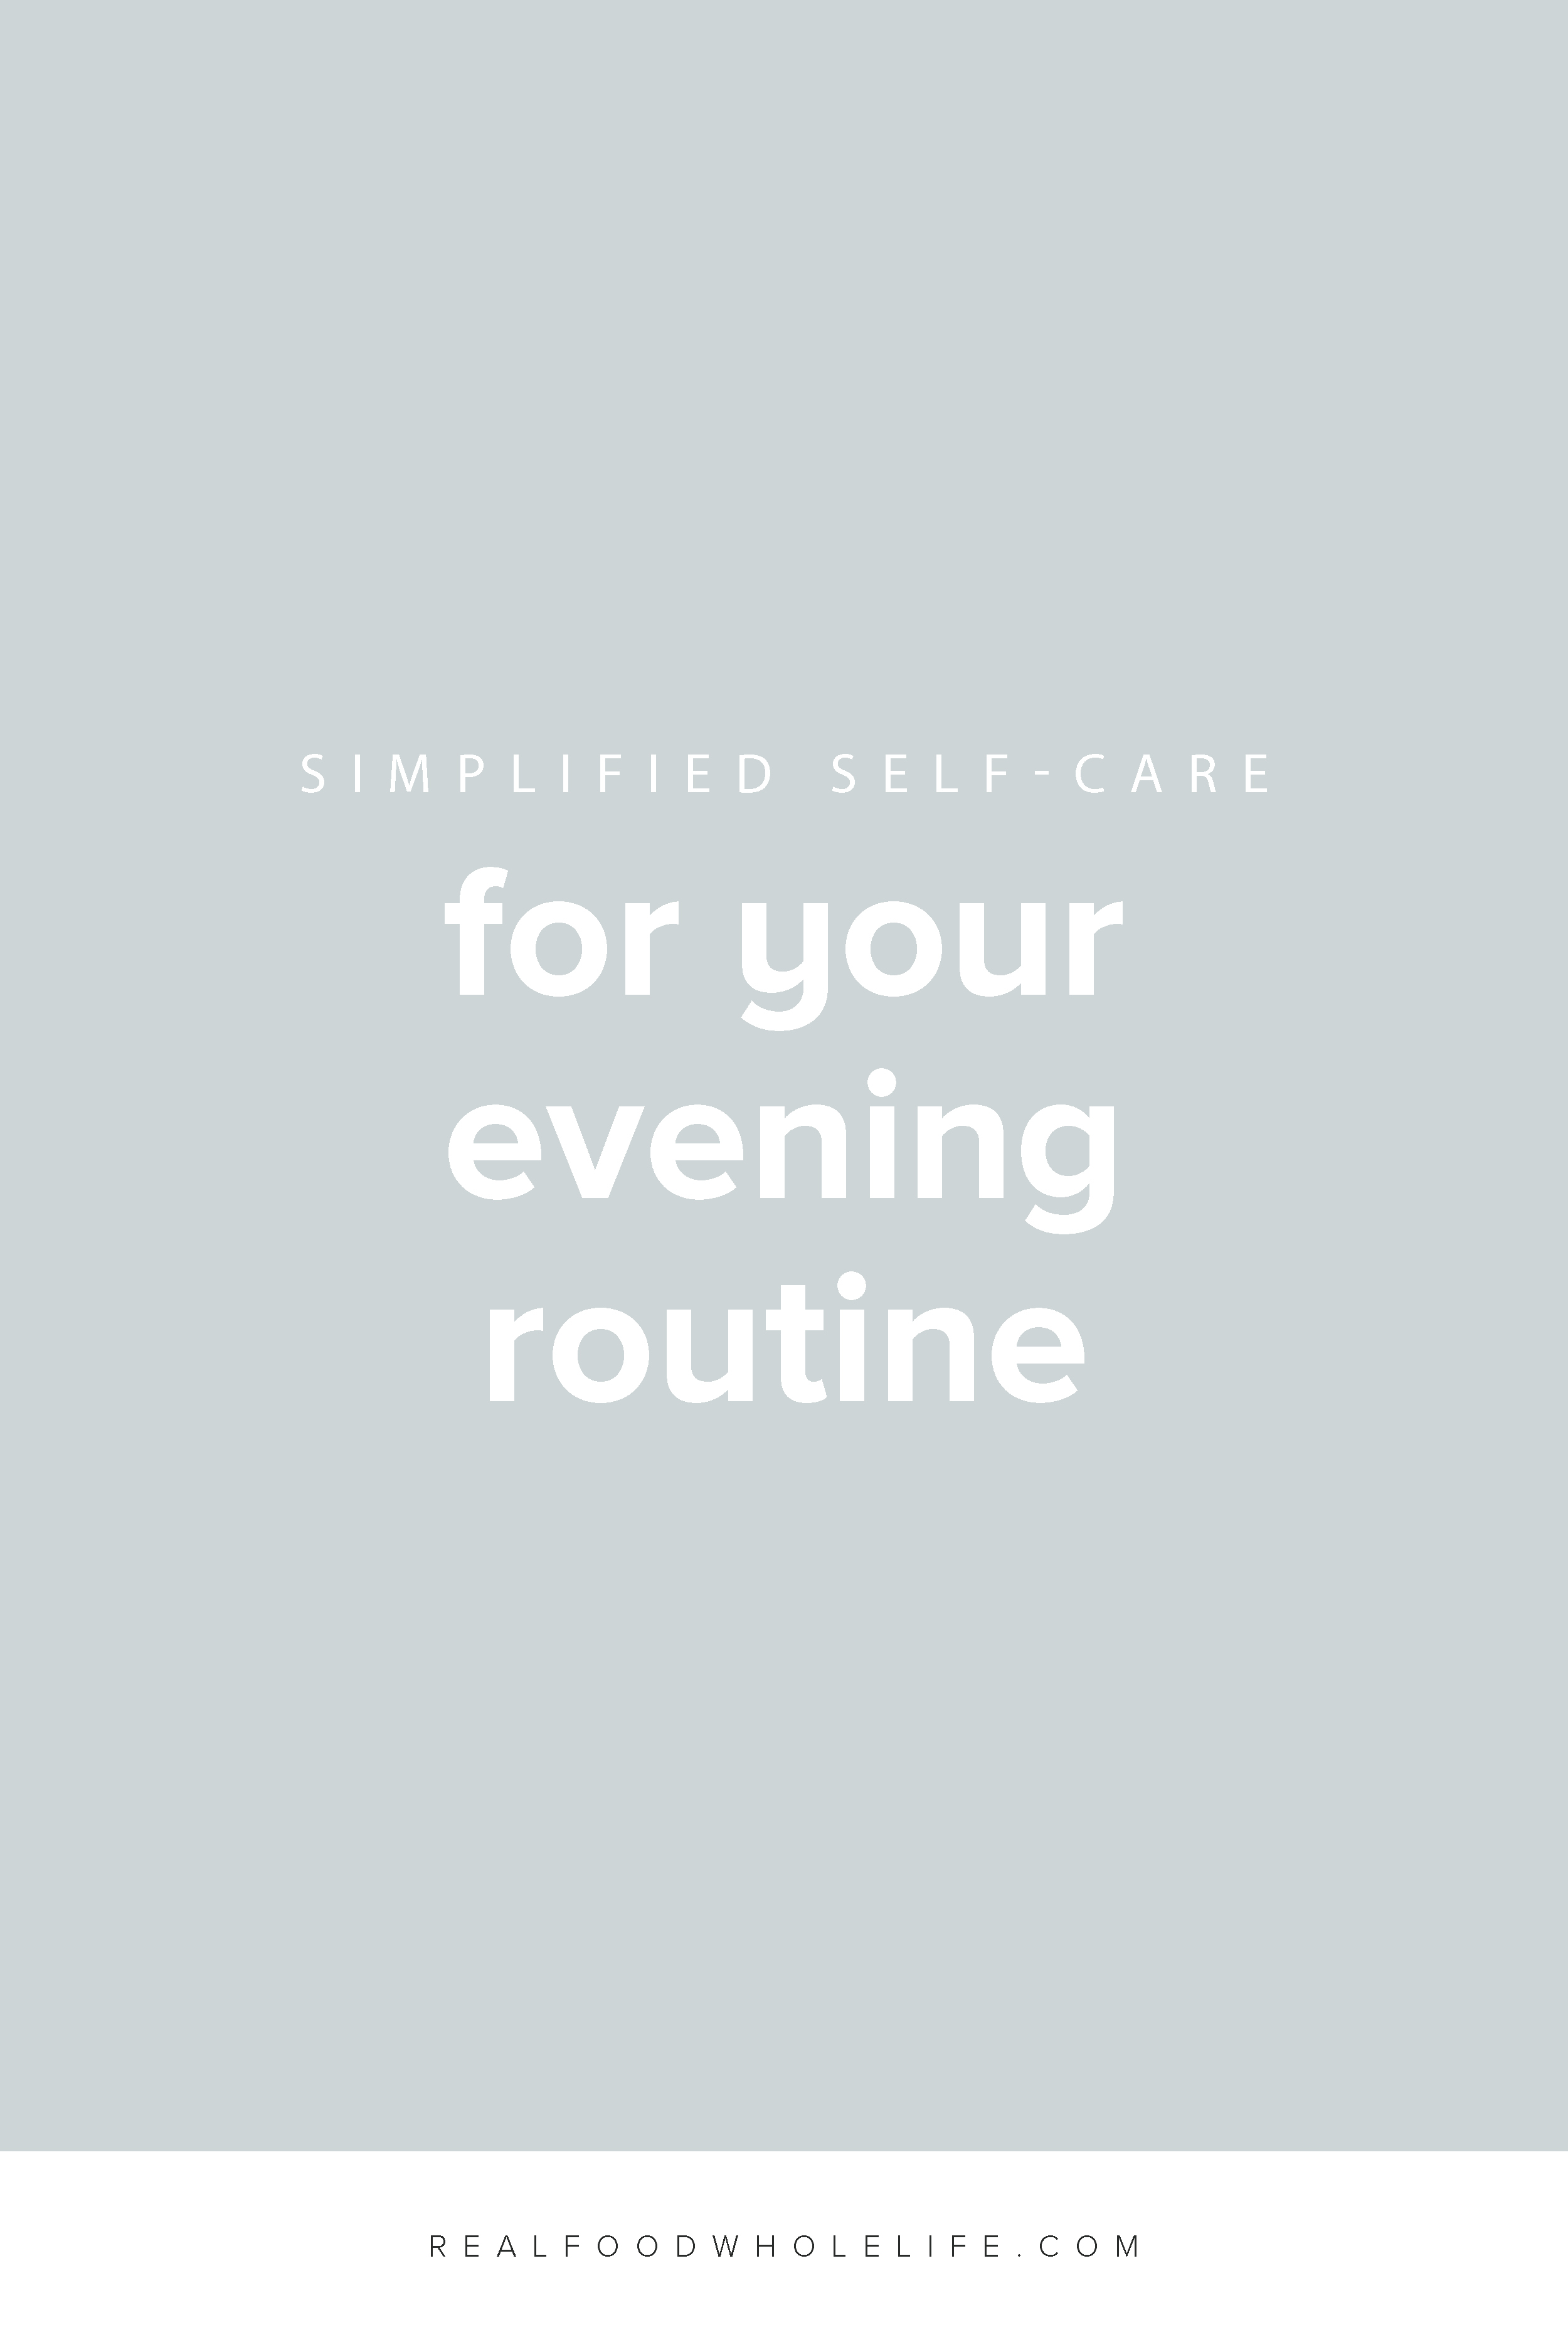 Simplified Self Care for your Evening Routine